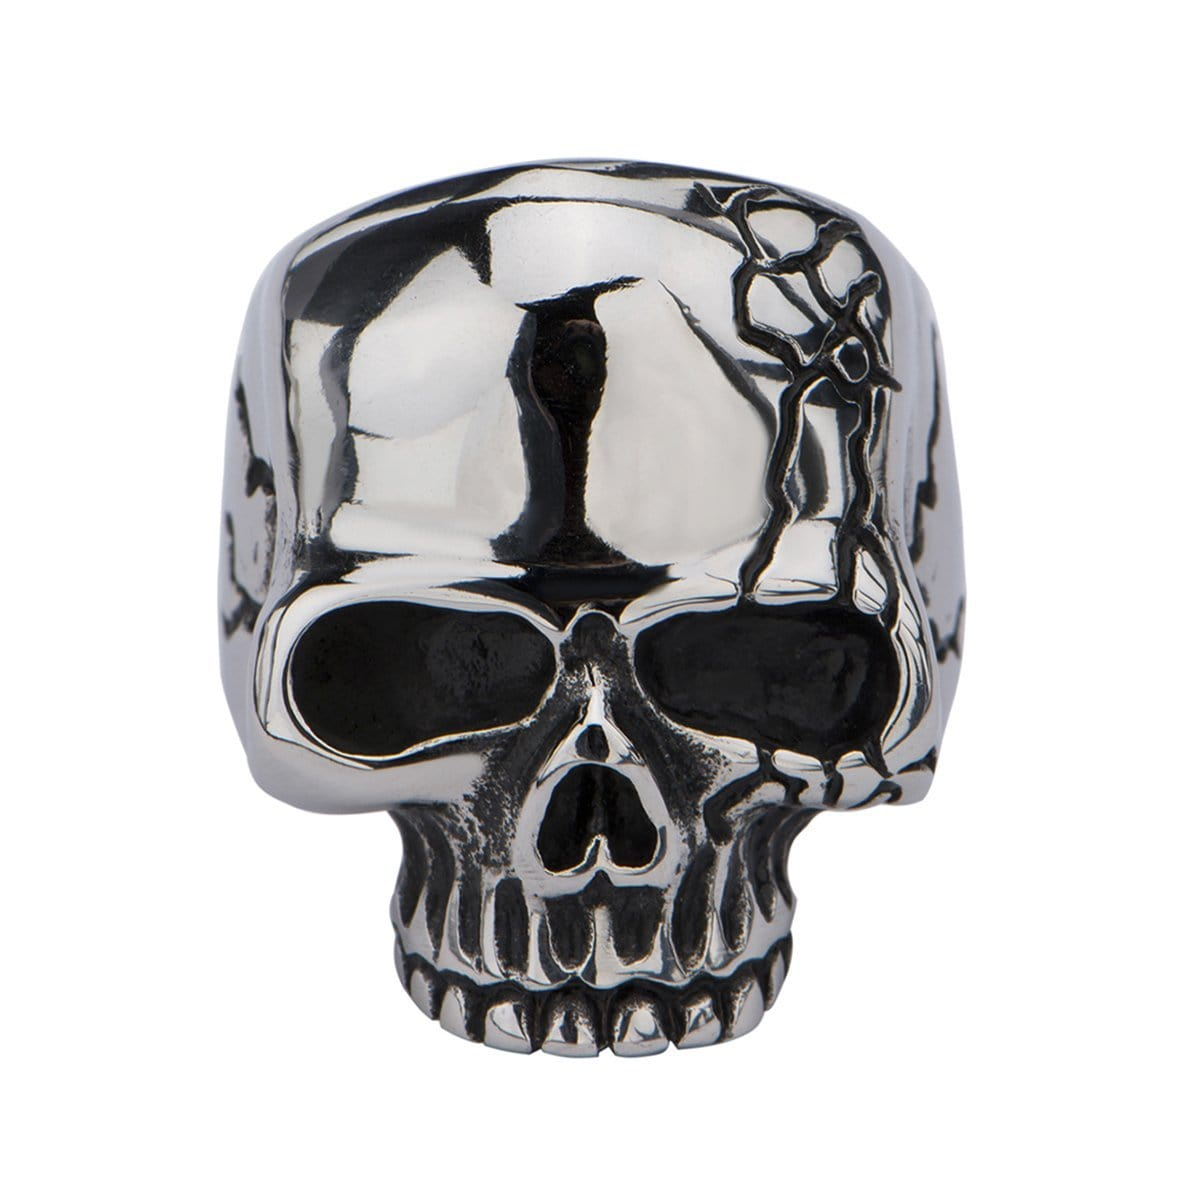 Silver Stainless Steel Hallowed Jaw Cracked Skull Ring